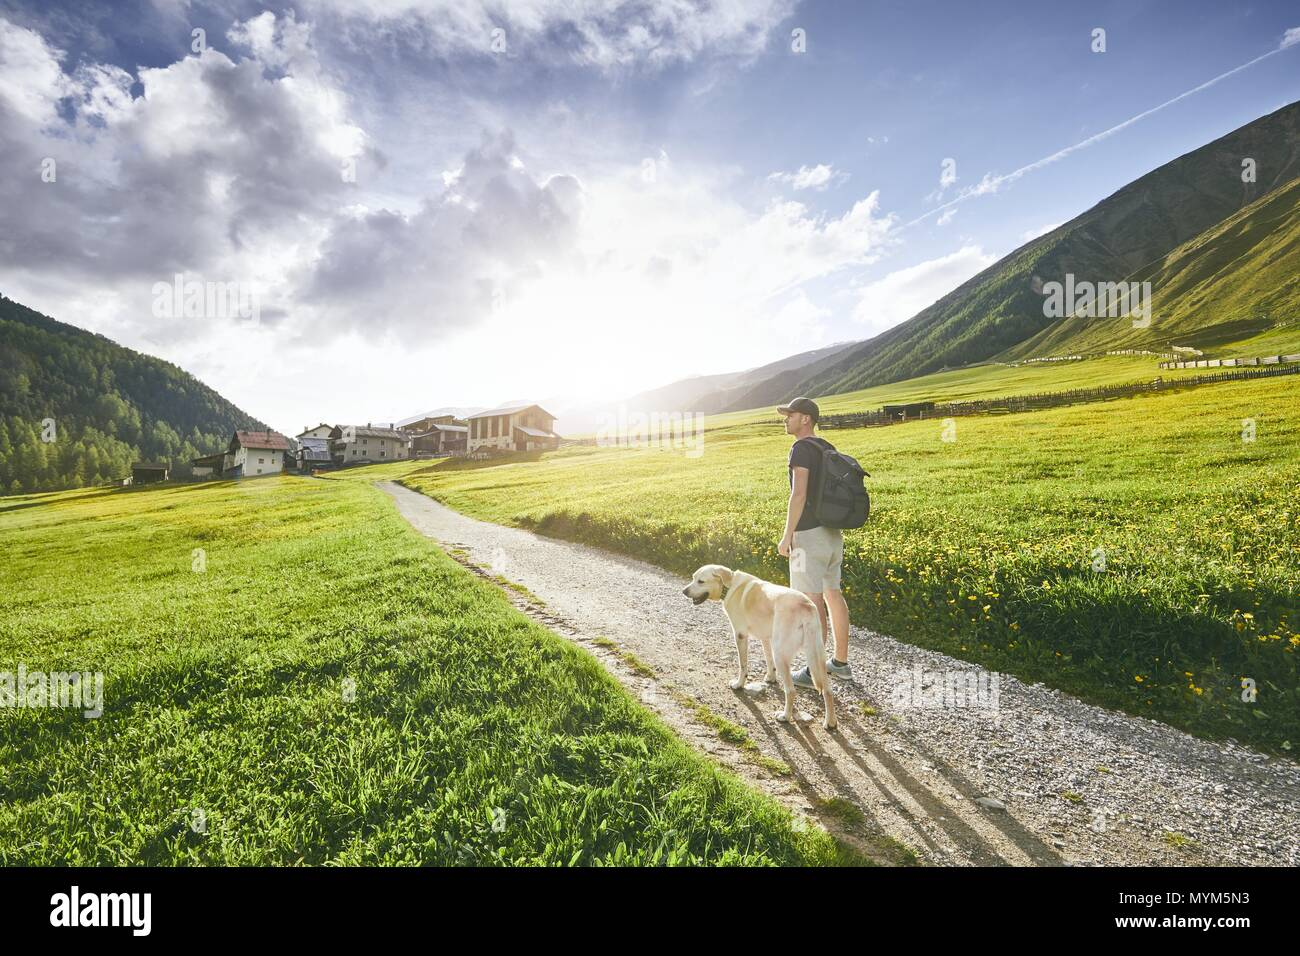 Tourist with dog in countryside. Young man walking with labrador retriever on dirt road against sunset. South Tyrol, Italy Stock Photo